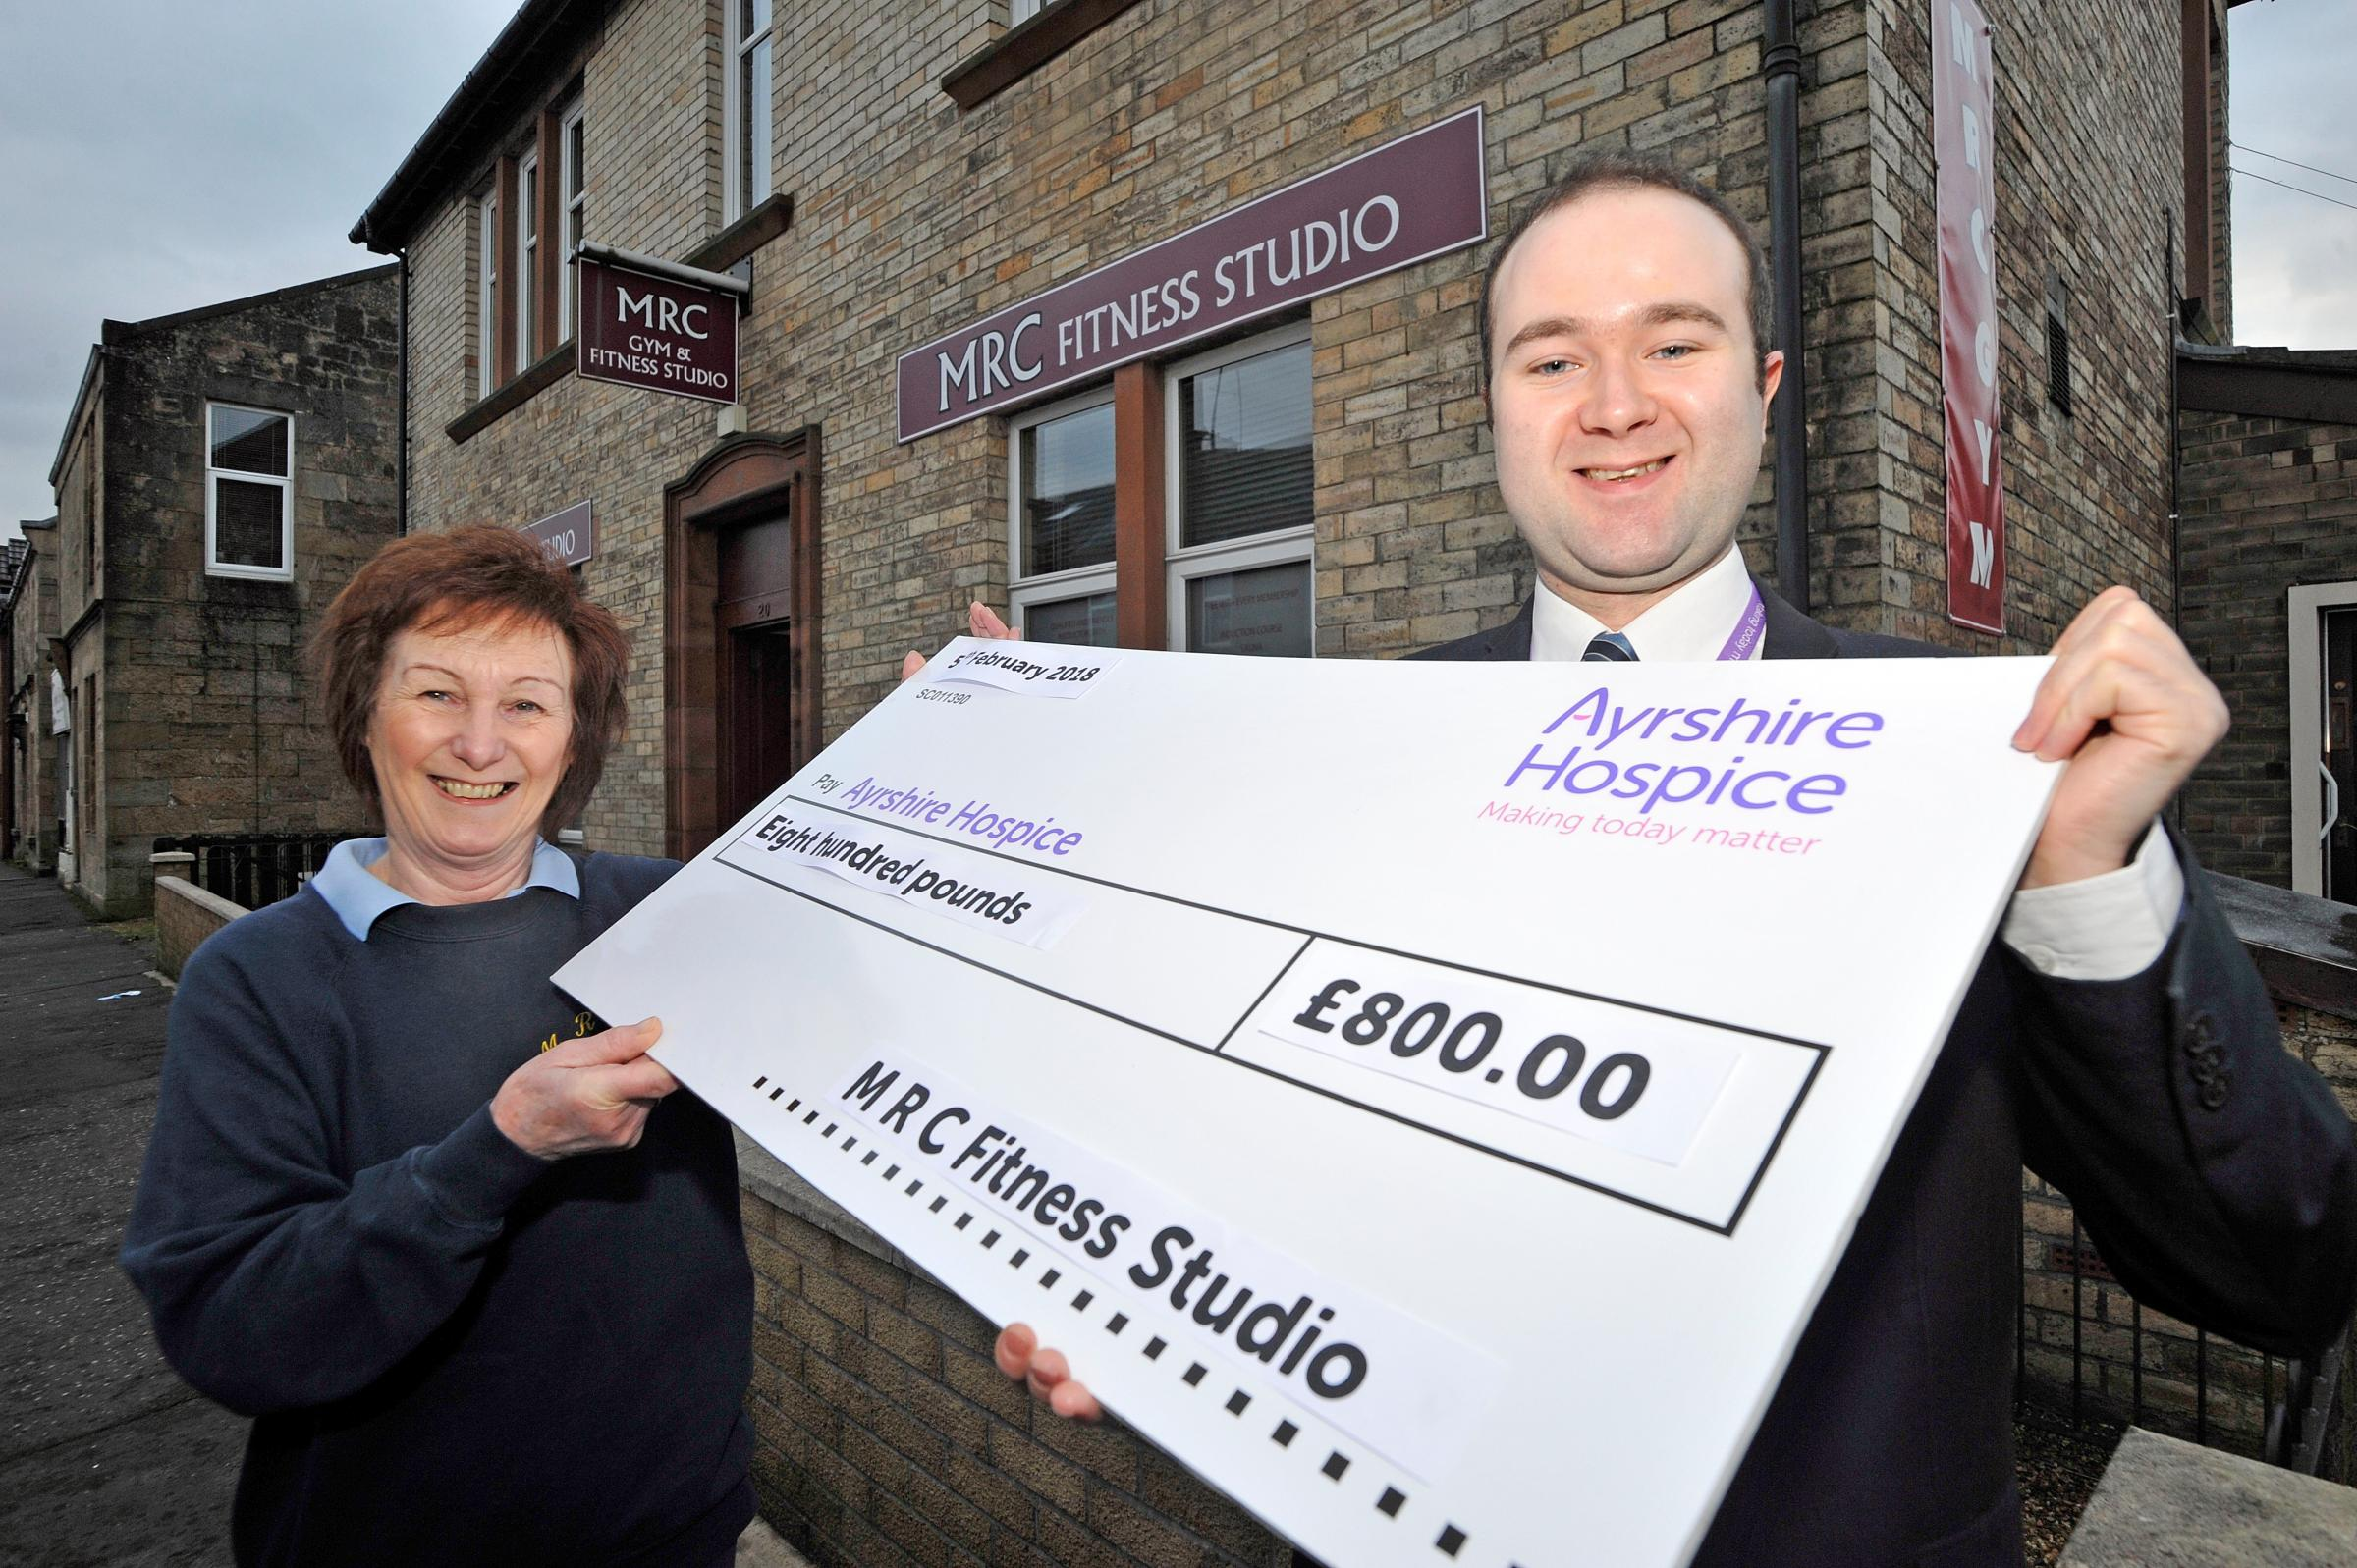 Fitness Club's boost for the Ayrshire Hospice